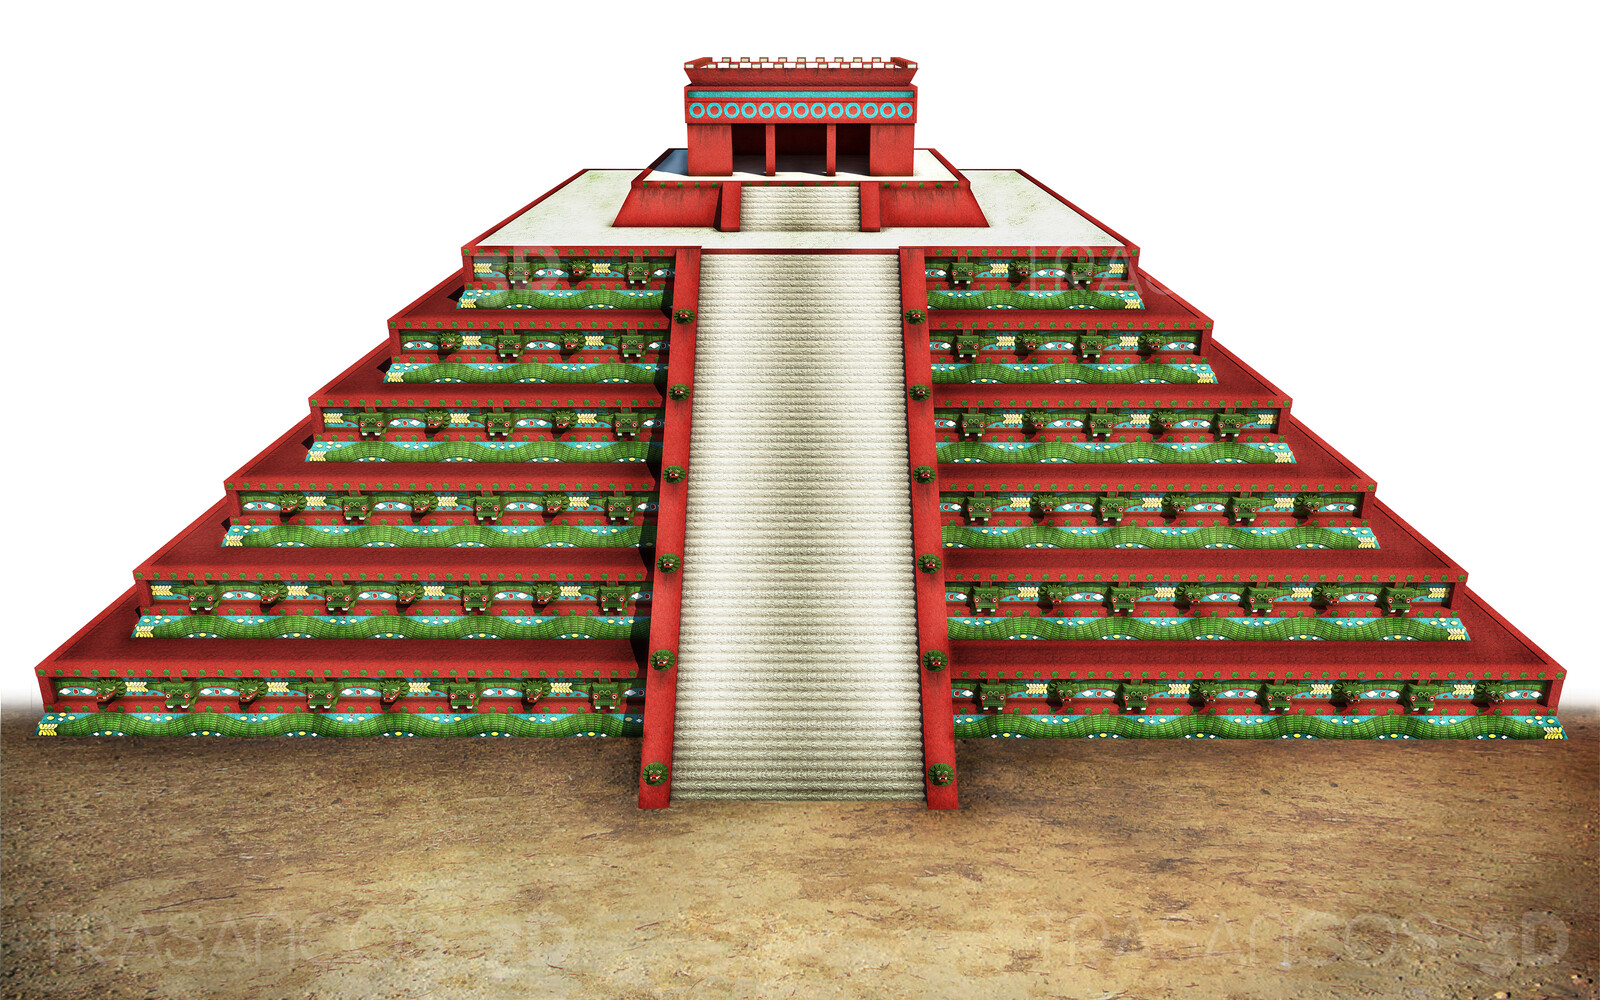 Pyramid of the Feathered Serpent in Tehotihuacan. Modeled in collaboration with: - Alejandro Soriano